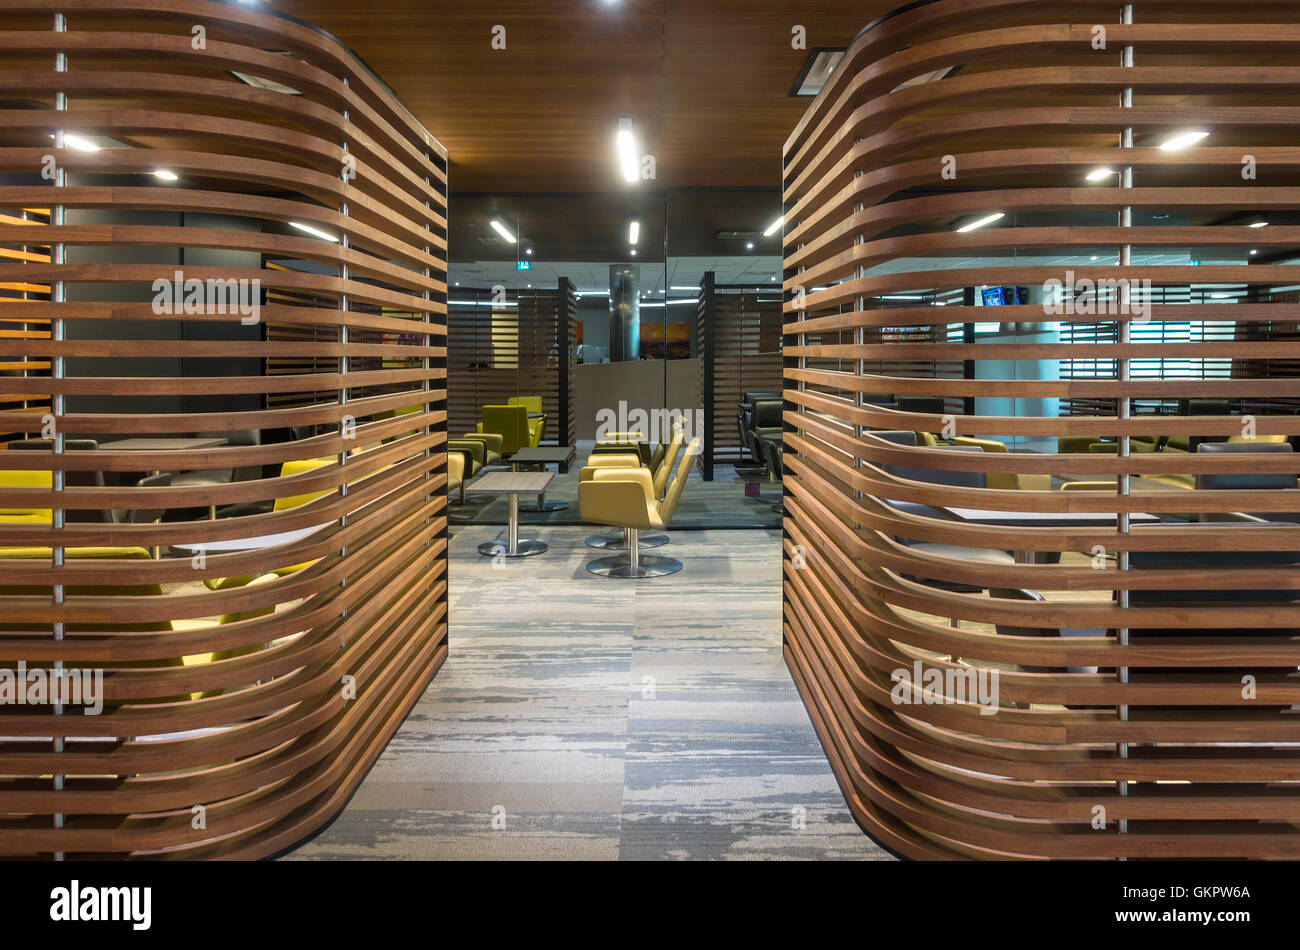 A semi private area of the Air France - KLM Lounge inside Toronto's Pearson Airport. Mississauga, Ontario, Canada. - Stock Image